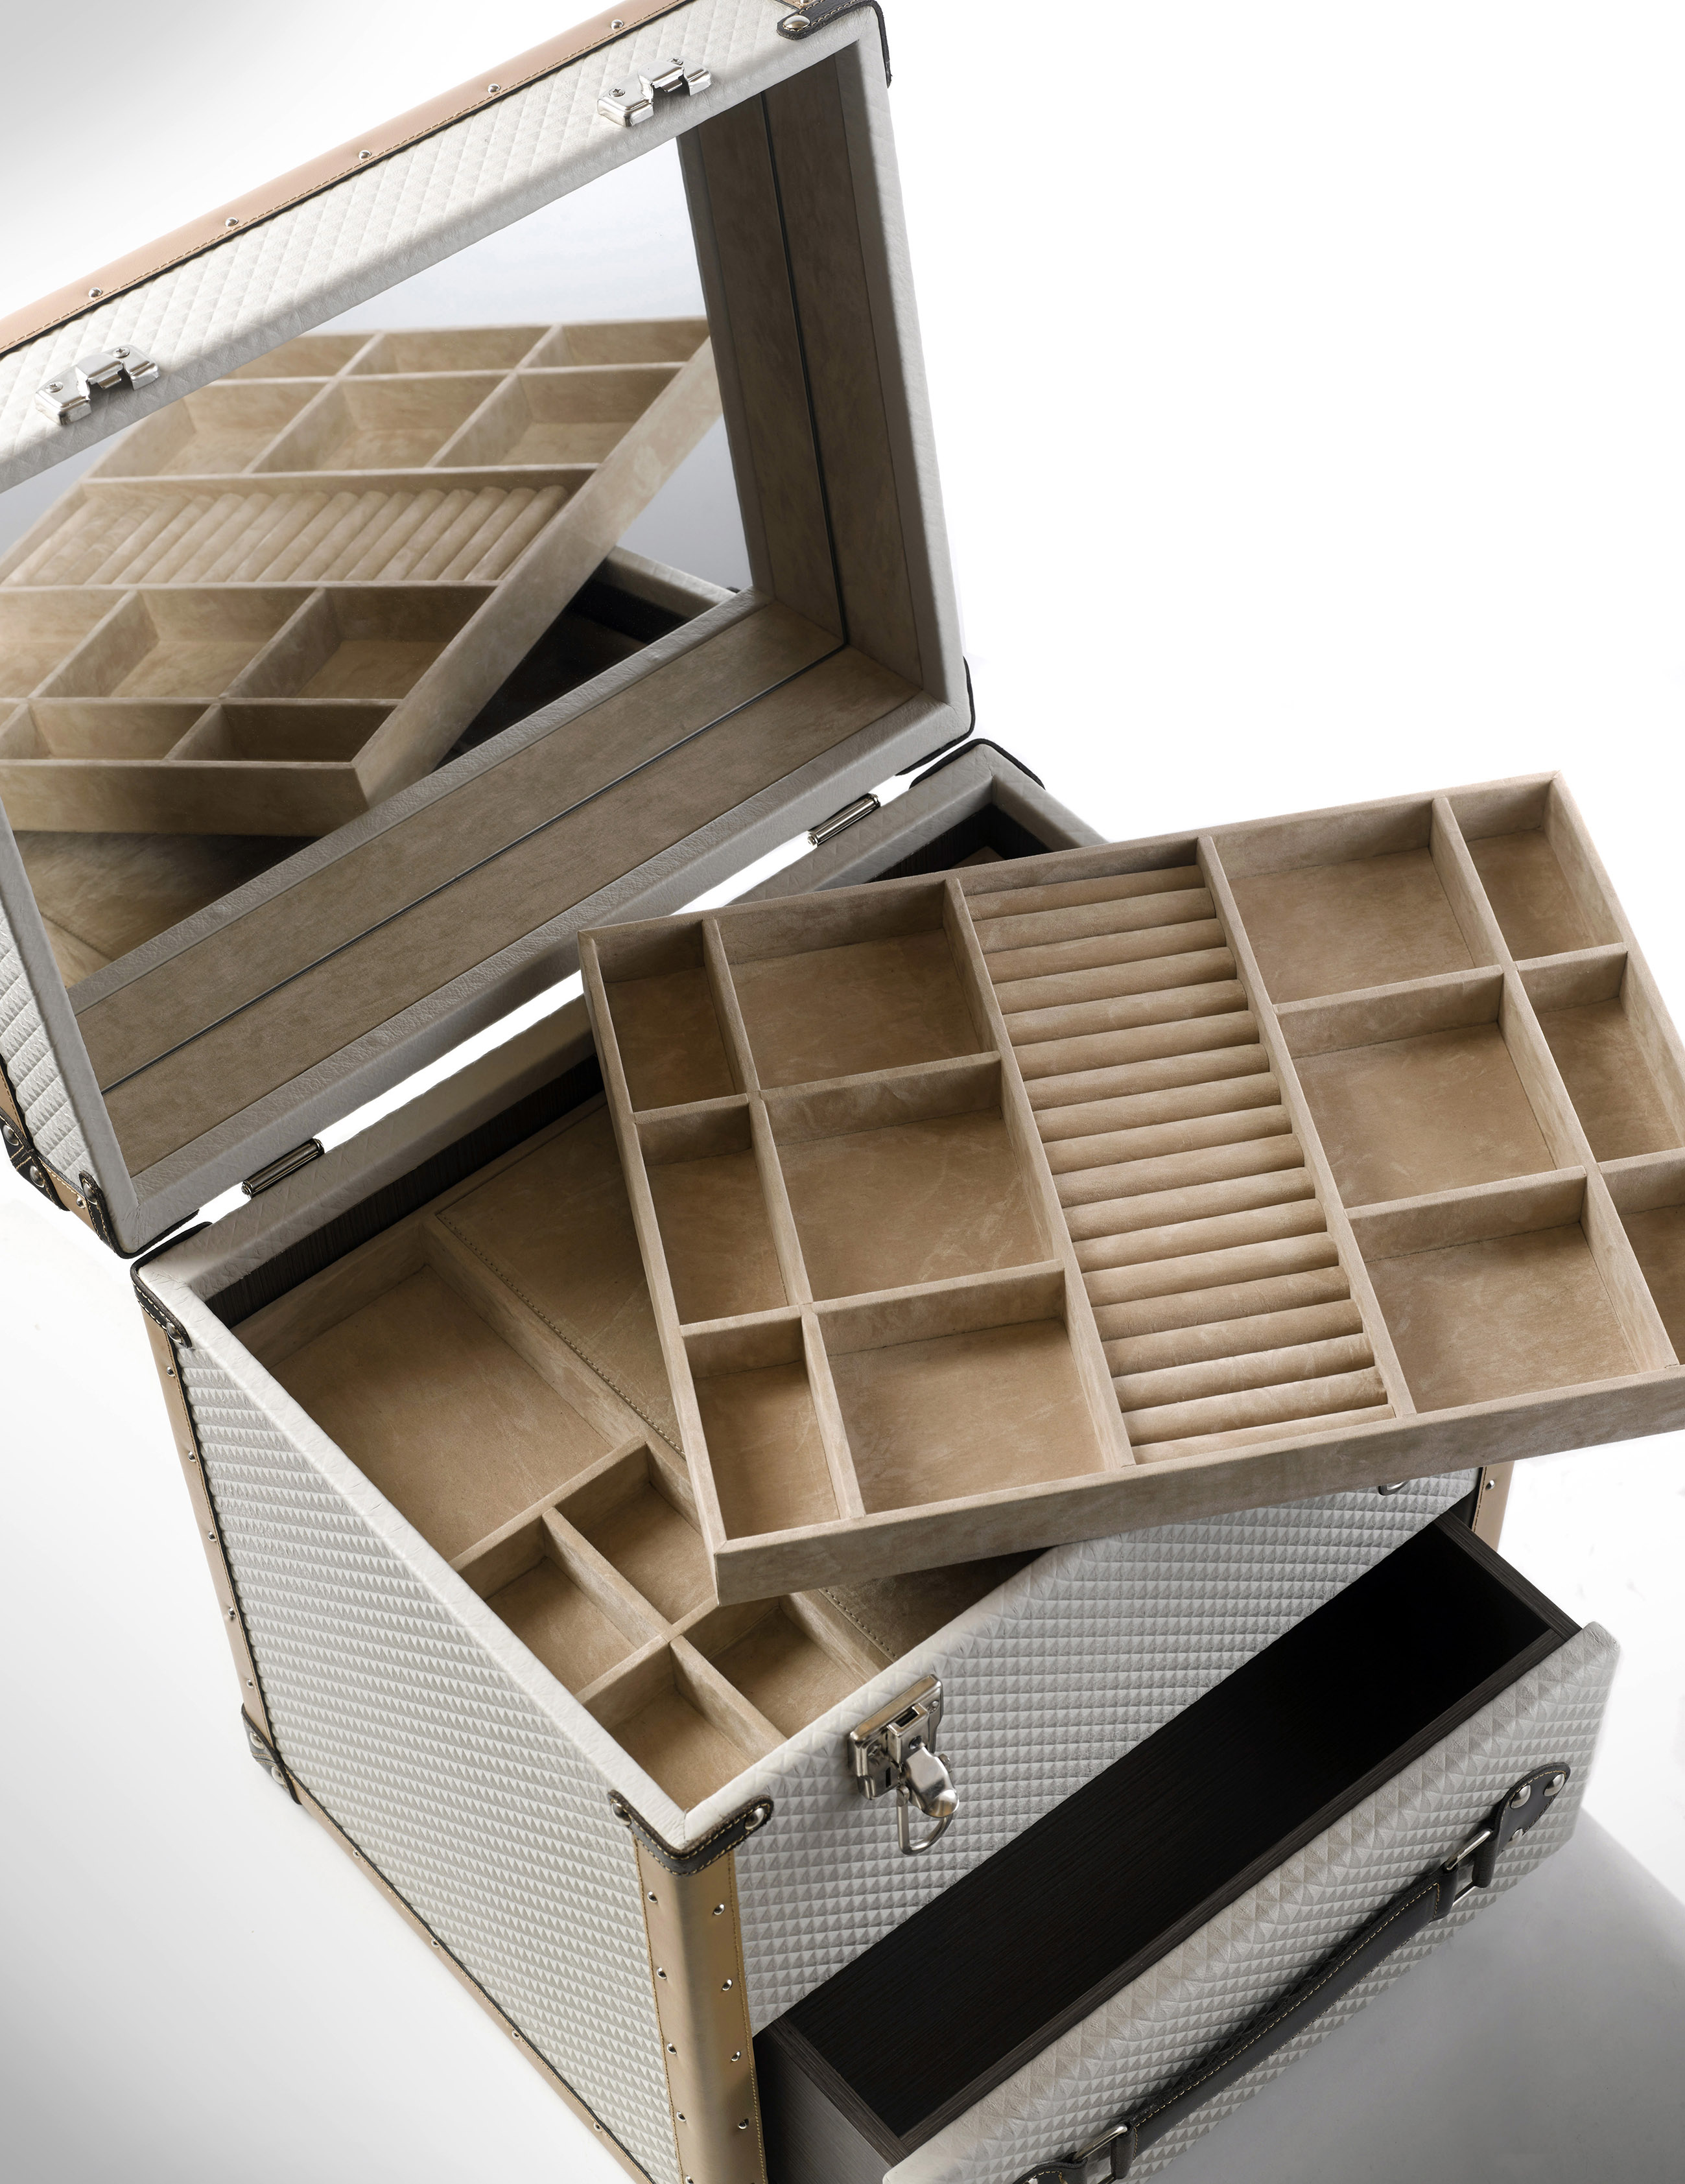 luxury jewellery box, The Traveler jewellery box is adorned in leather.